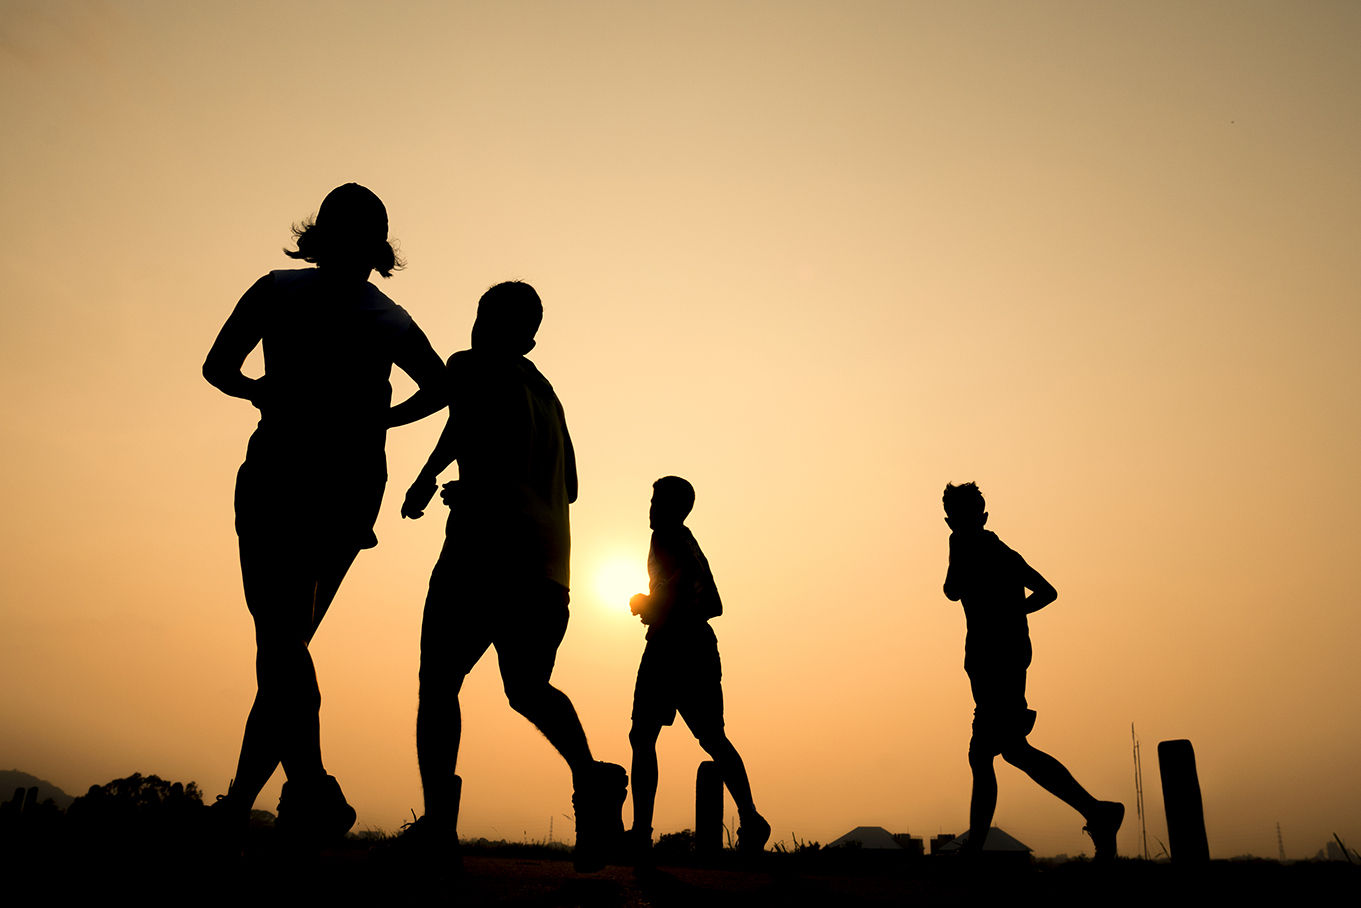 Silhouette group of young healthy lifestyle running at sunrise.